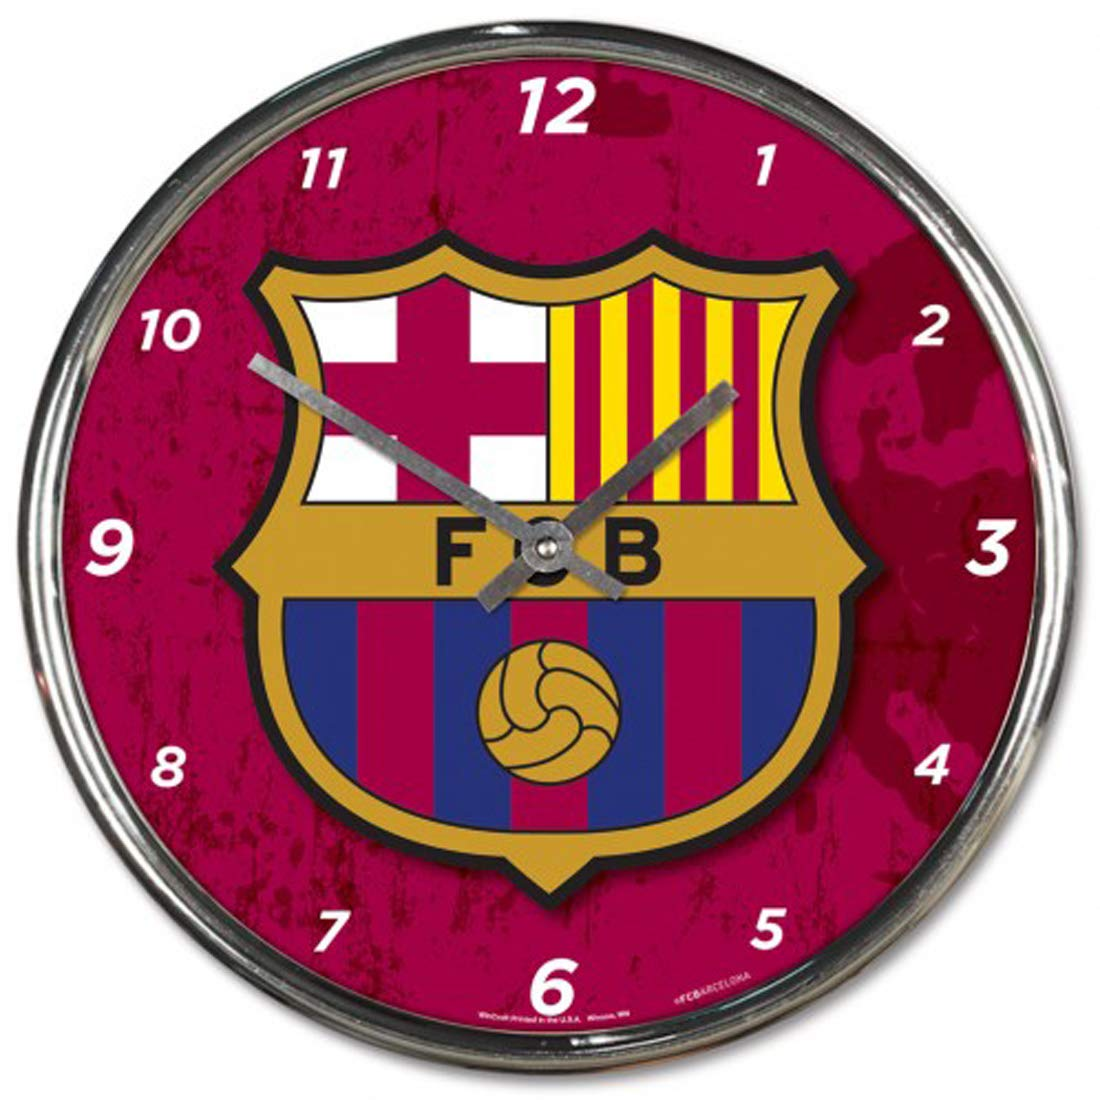 Wincraft International Soccer FC Barcelona Wall Clock Chrome Plated 12'' Round by Wincraft